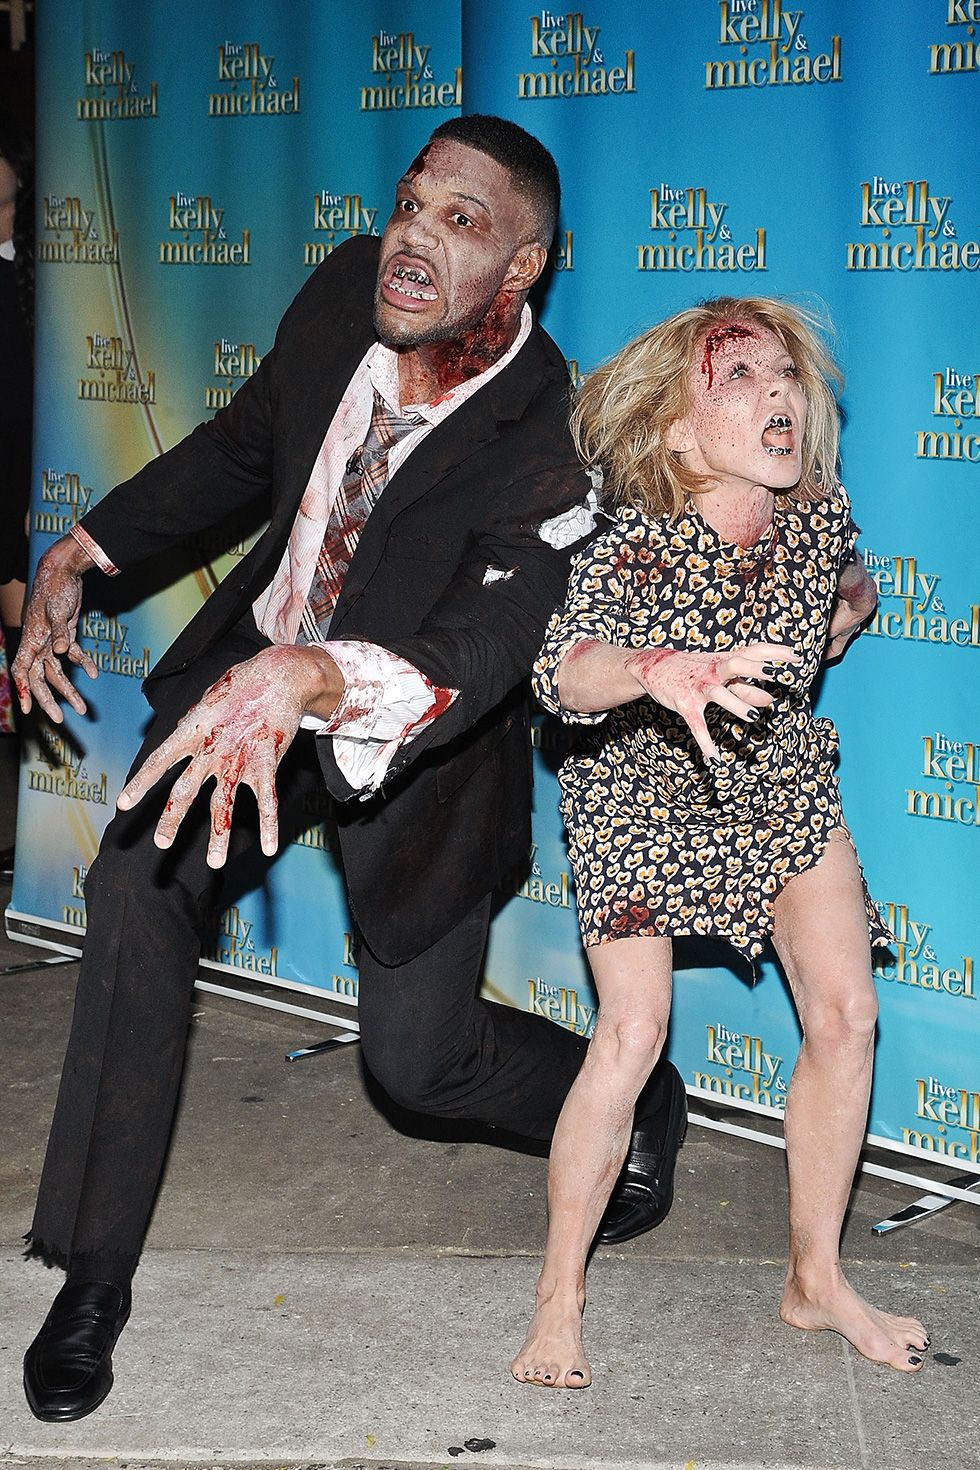 Michael Strahan and Kelly Ripa - Zombies Michael Strahan and Kelly Ripa rocked their best zombie looks in 2014 for the Live With Kelly & Michael Halloween show. Dance moves not necessary.